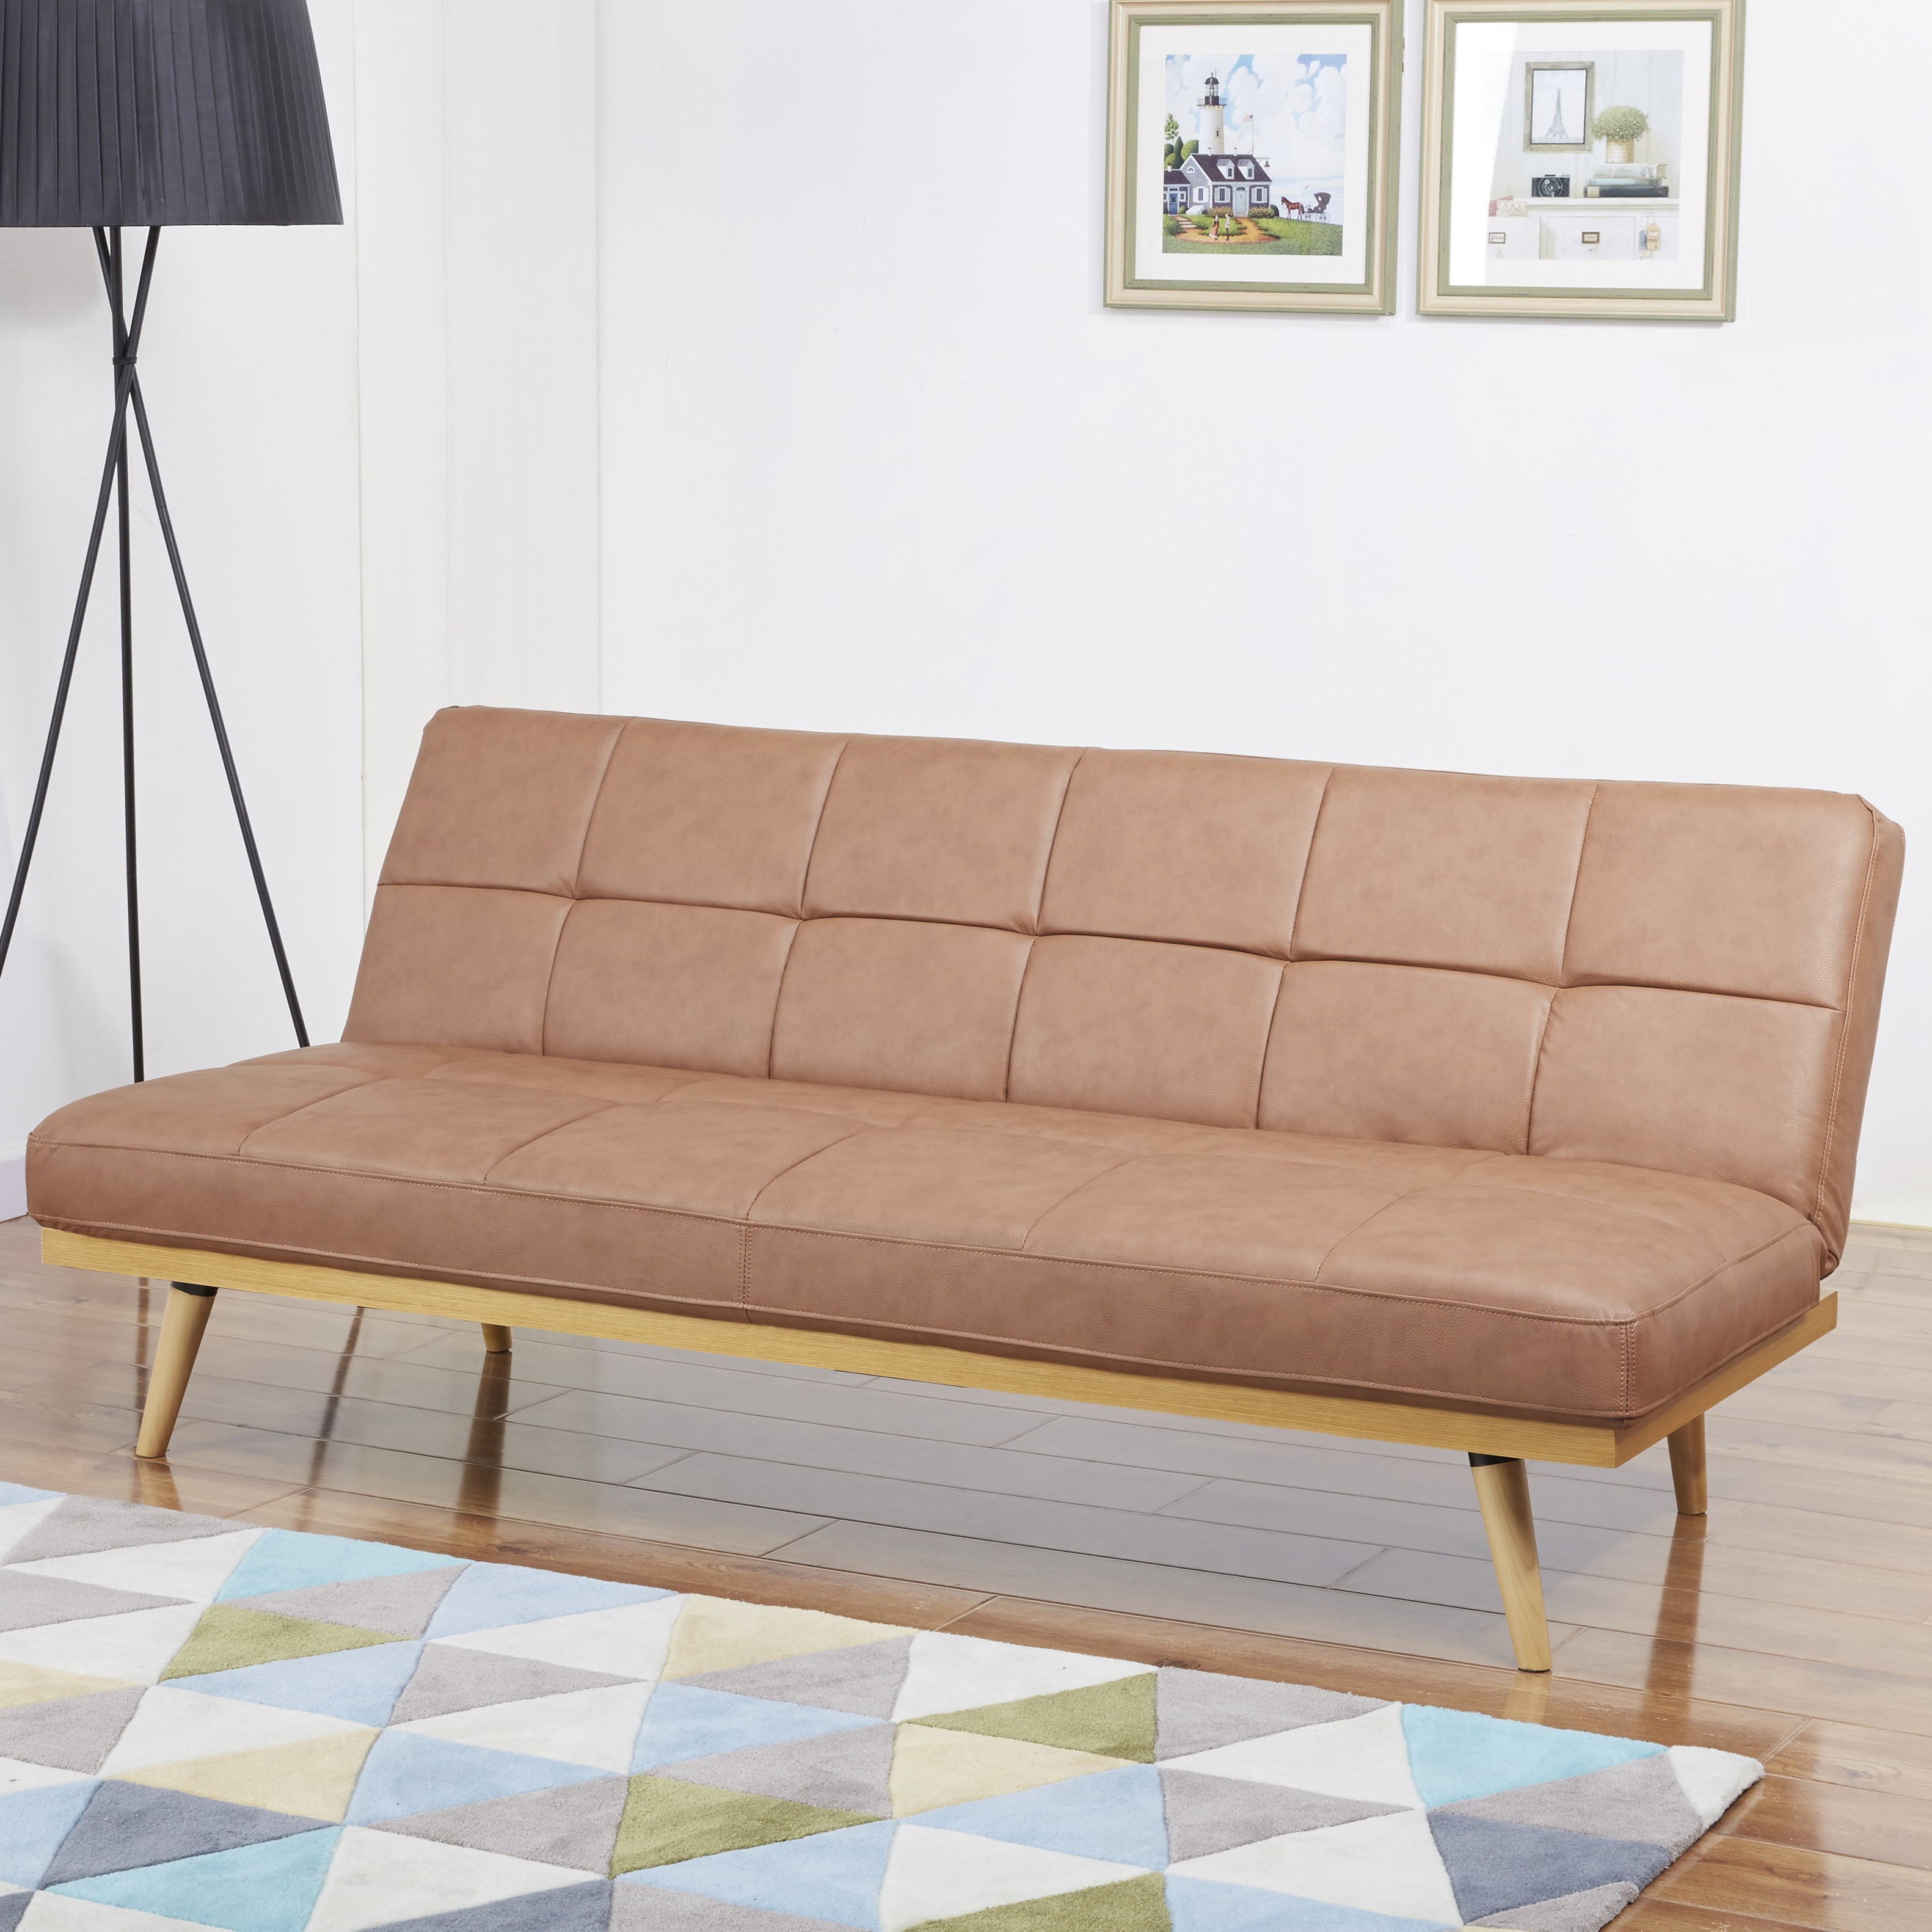 Malo Vintage Brown Leather Sofa Bed